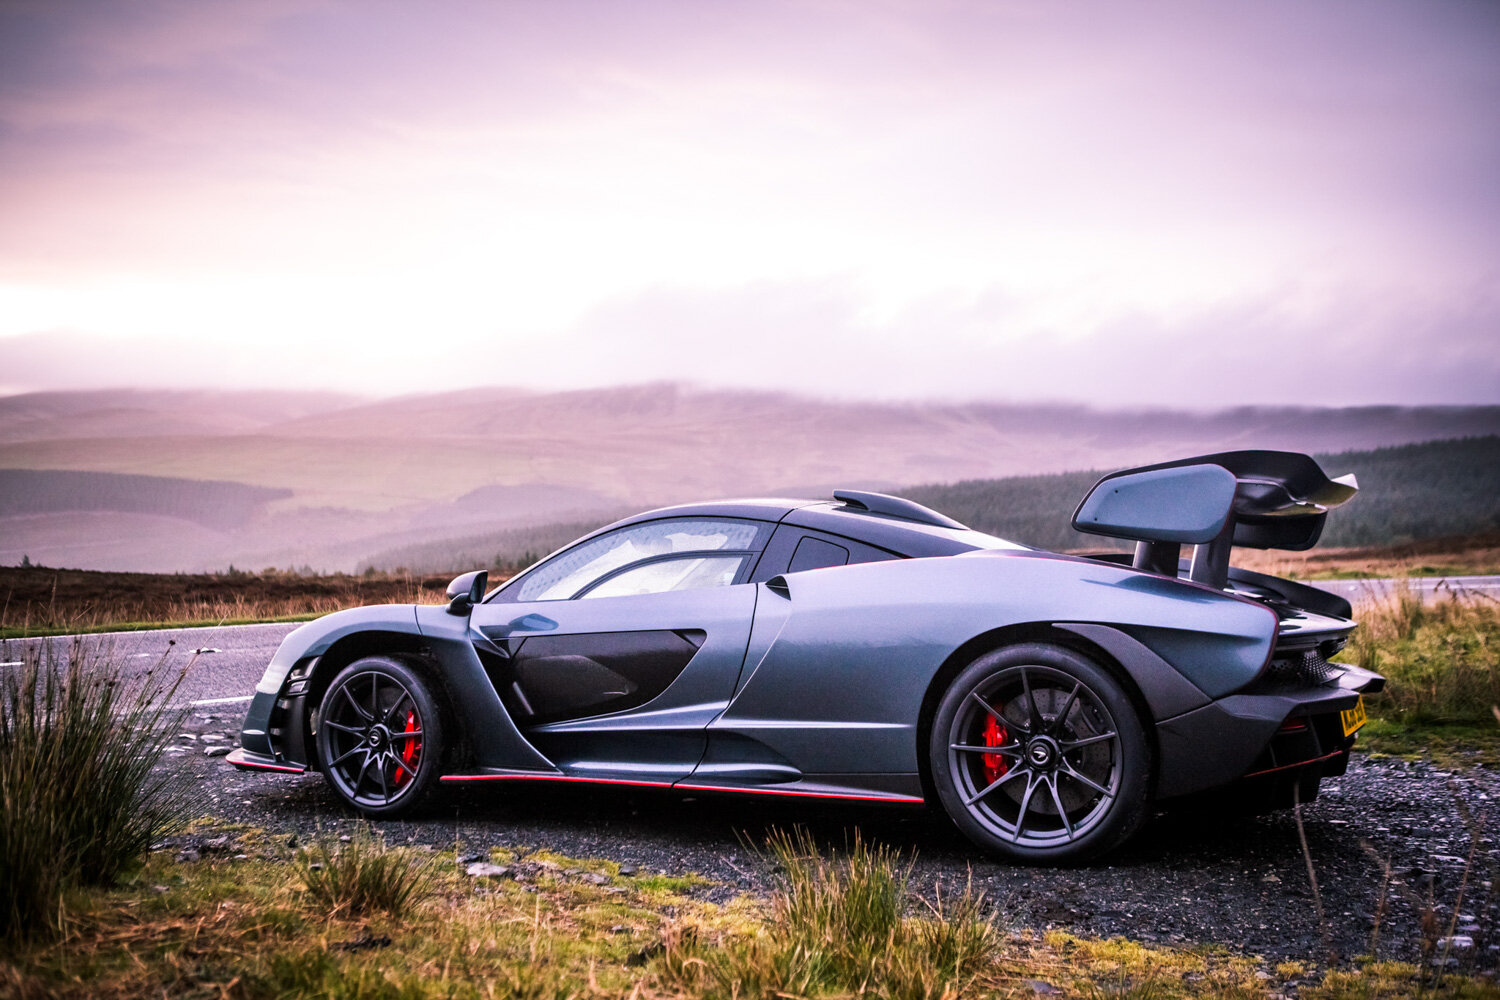 drone_filming_aerial_imagery_north_wales_drone_club_gt_mclaren_senna-3.jpg